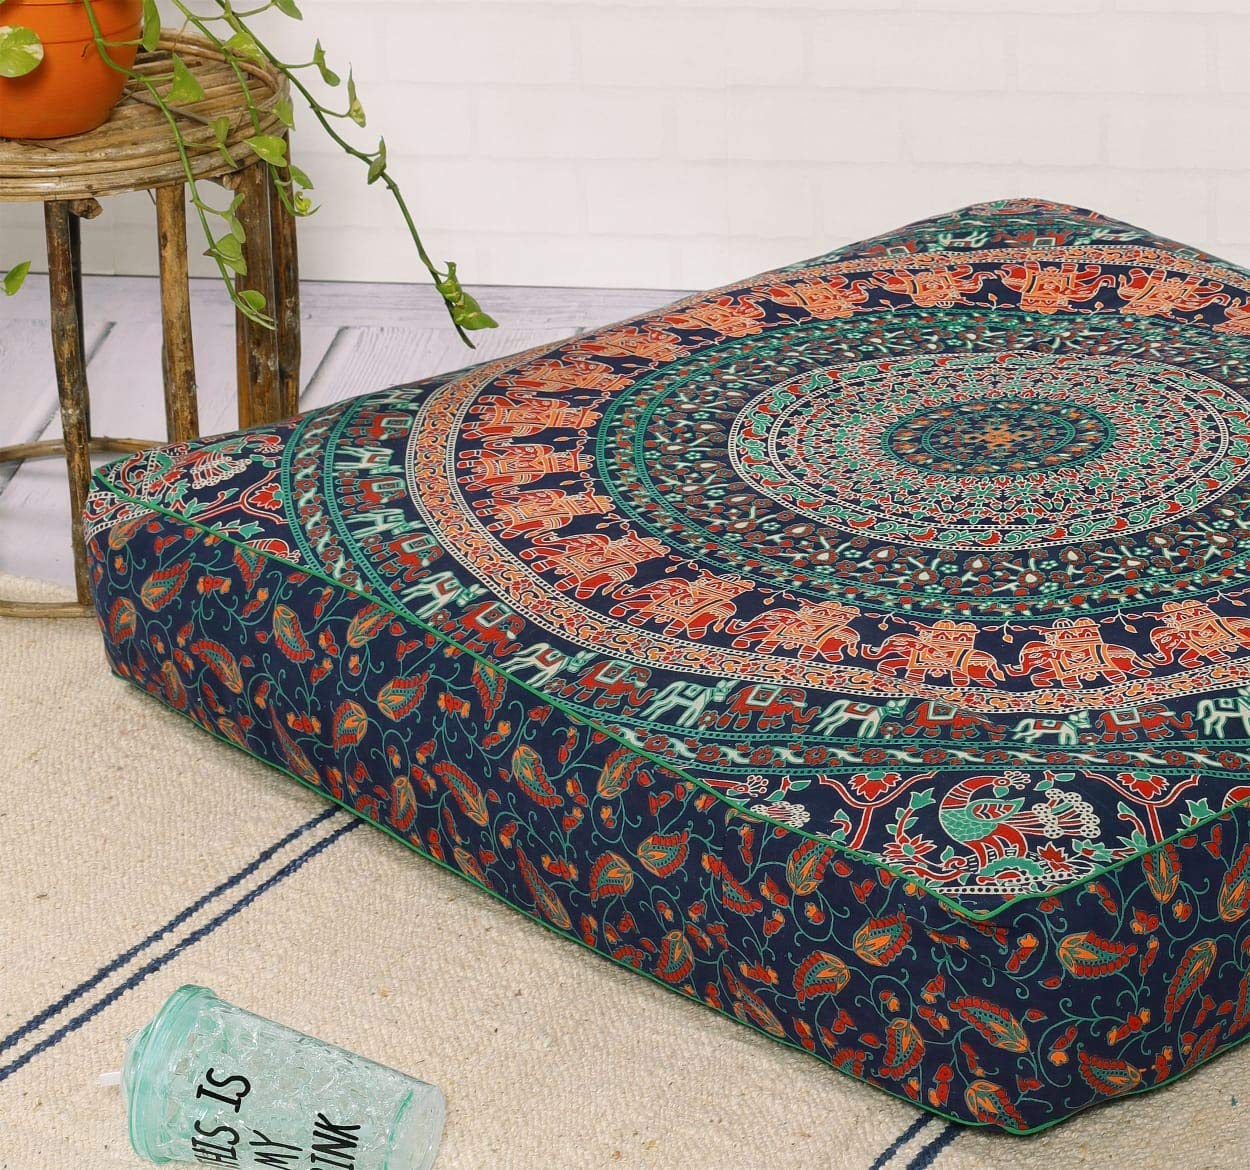 Indian Mandala Square Floor Pillow Cover Ottoman Pouf Cover Daybed Oversized Cotton Cushion Cover with Heavy Duty Zipper Seating Ottoman Poufs Dog-Pets Bed 35'' by Hemsi-77